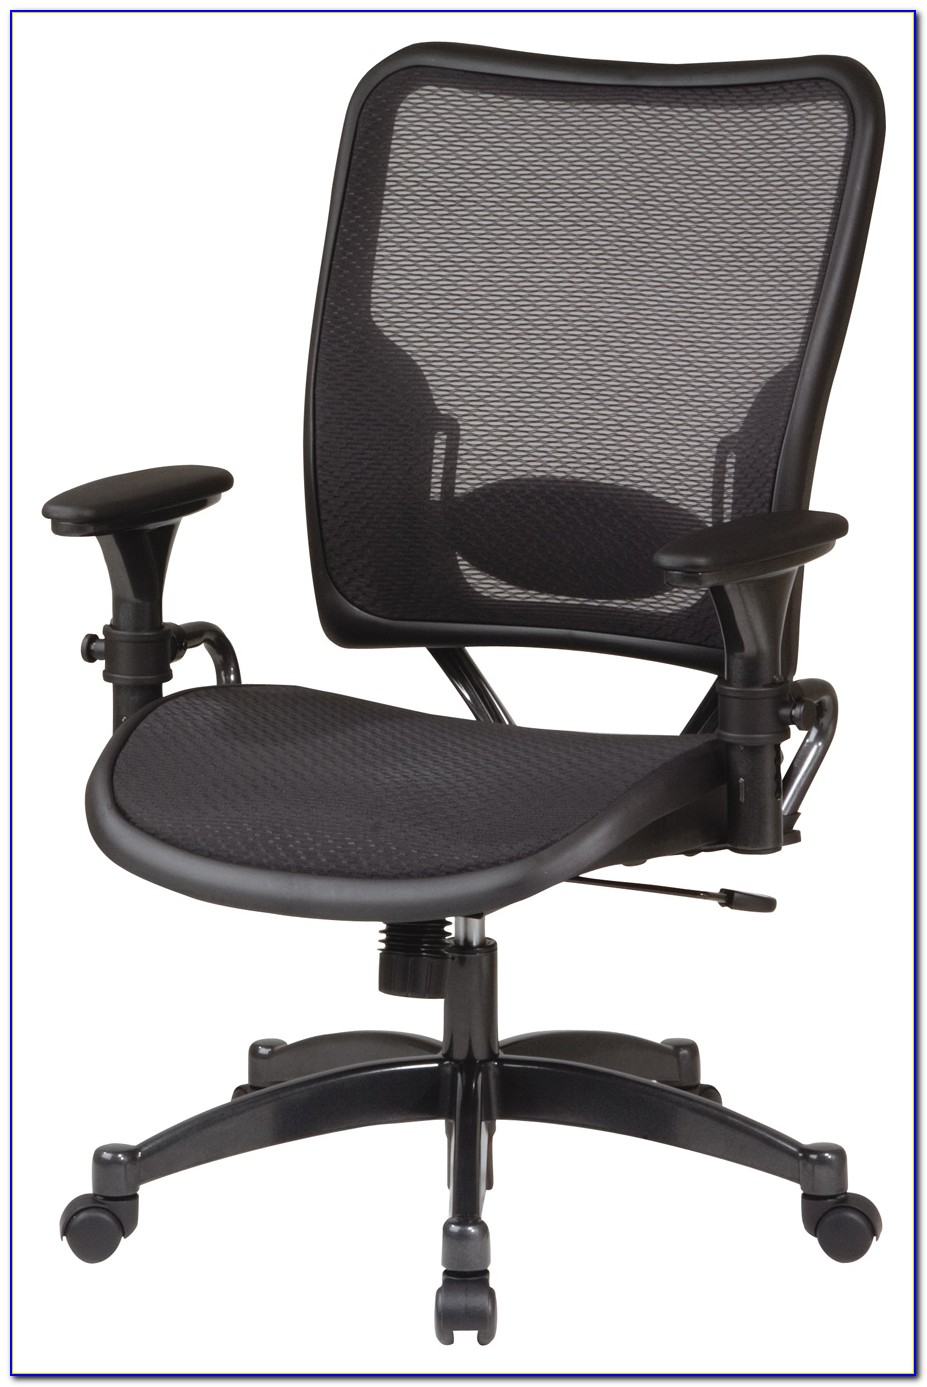 Mesh Seat Office Chair Singapore